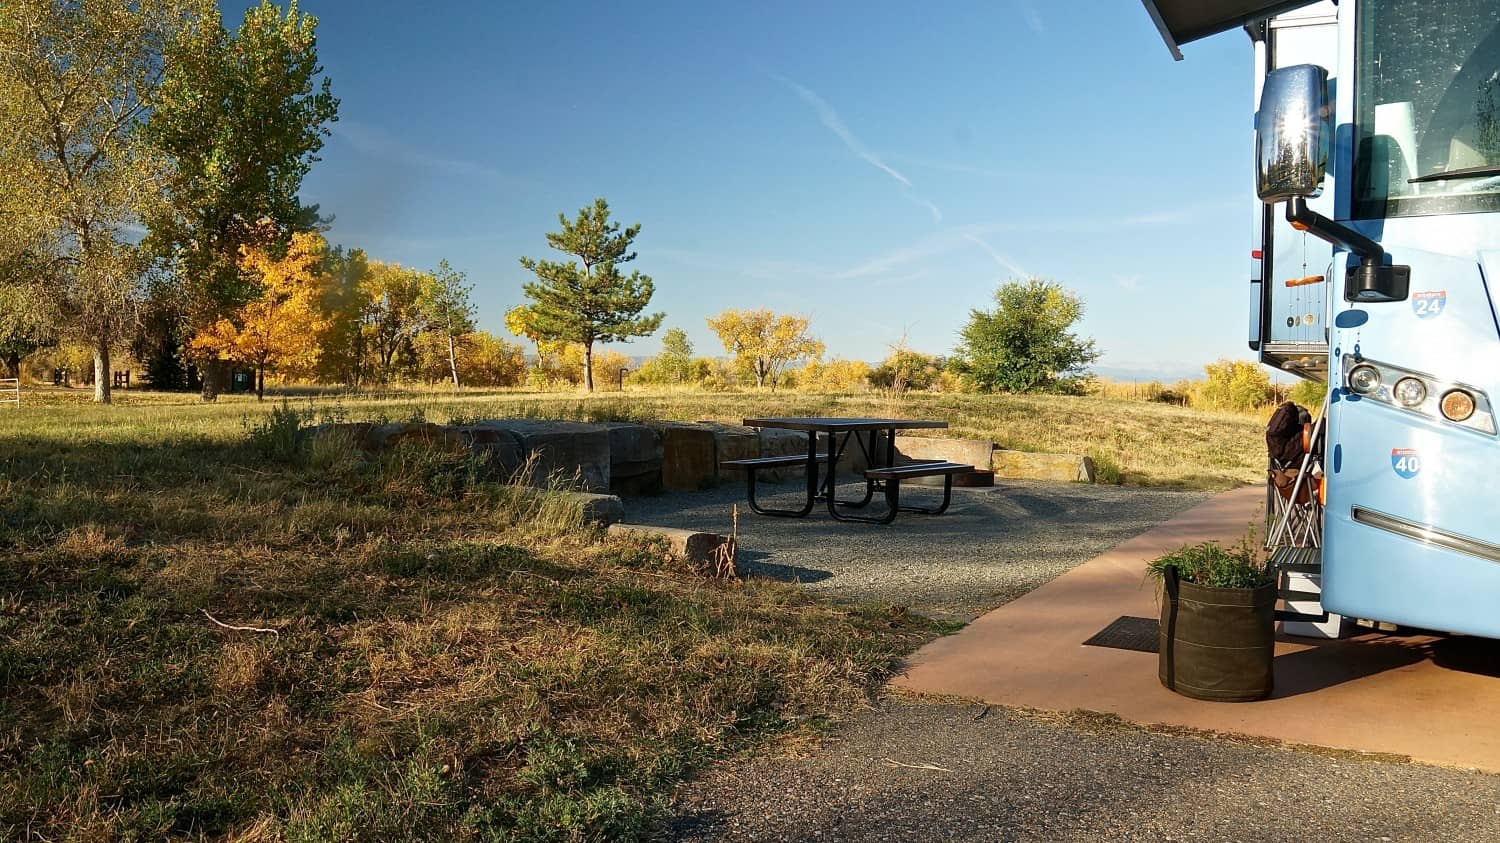 Camping at Cherry Creek State Park - Aurora, CO